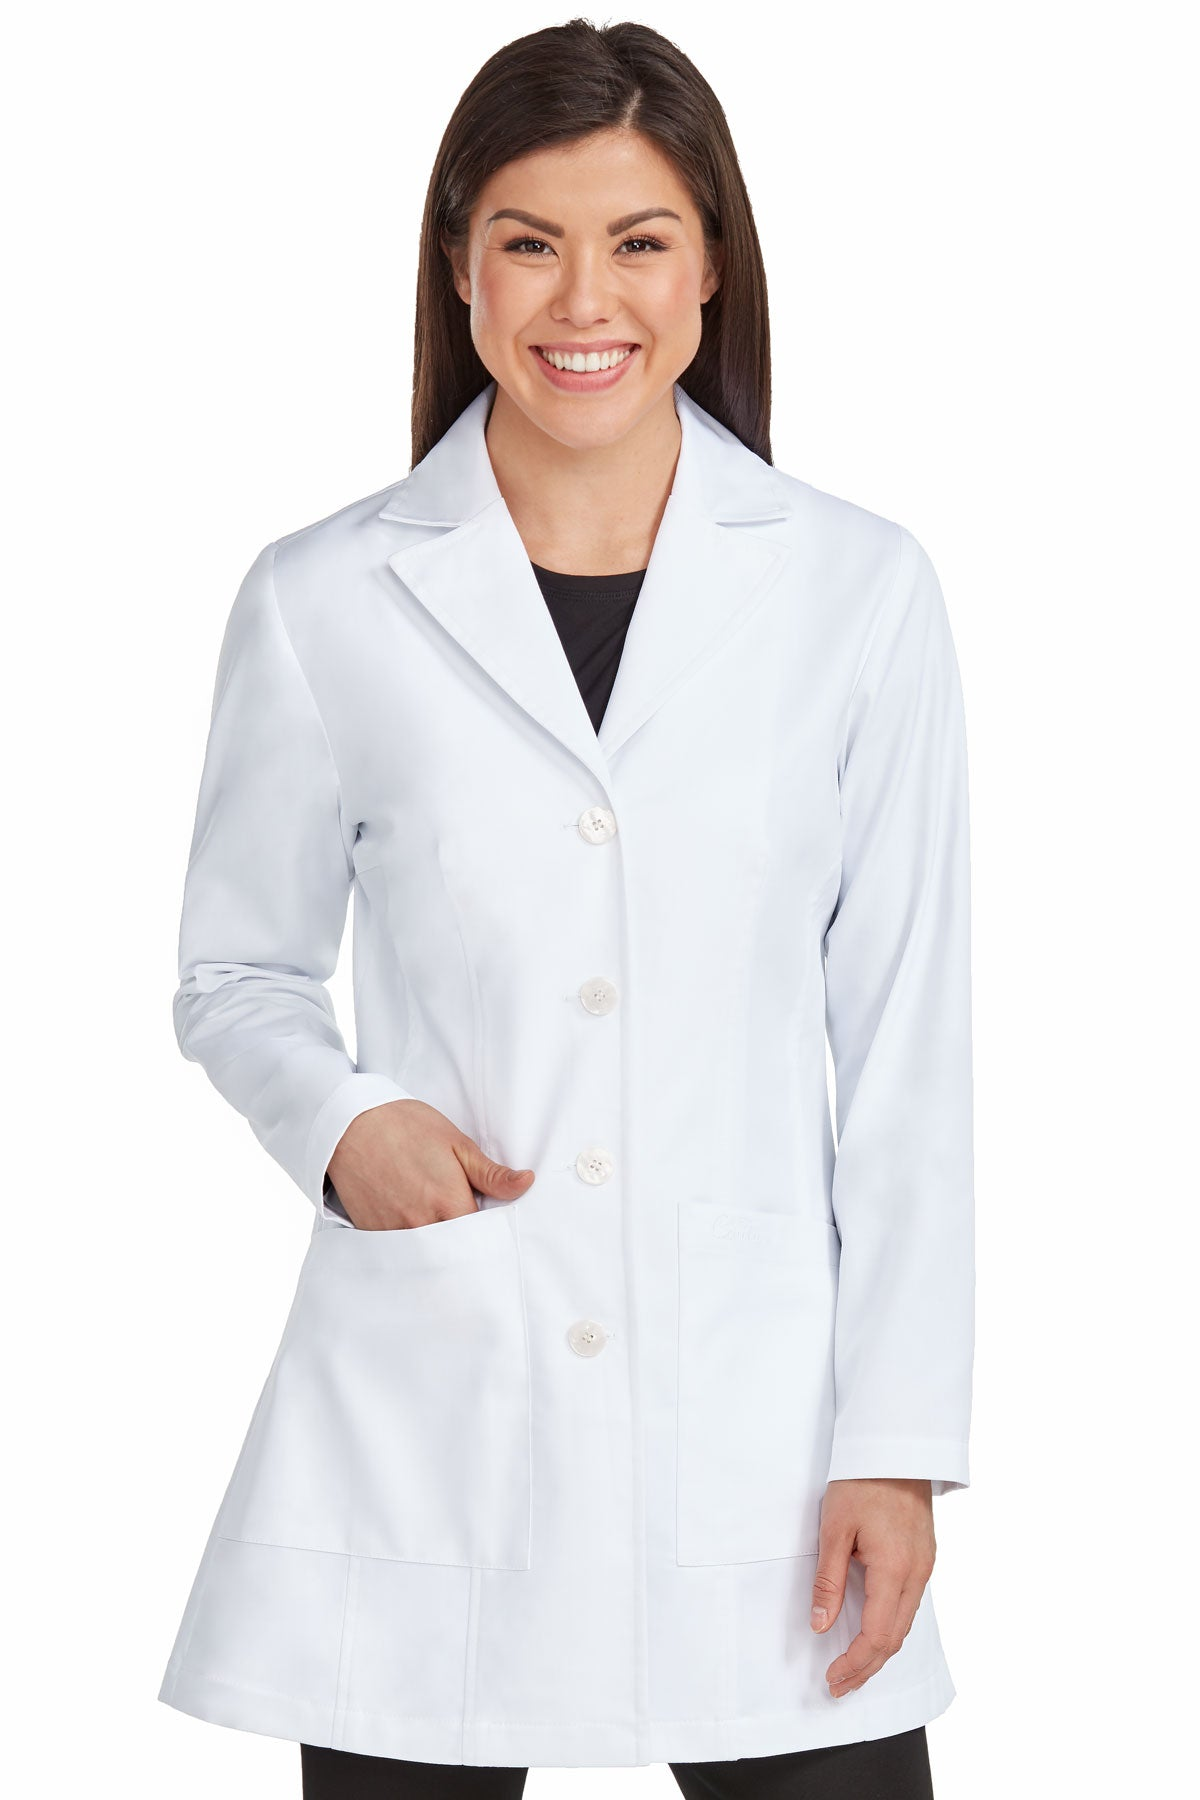 Med Couture 9644 Tailored Mid Length Lab Coat